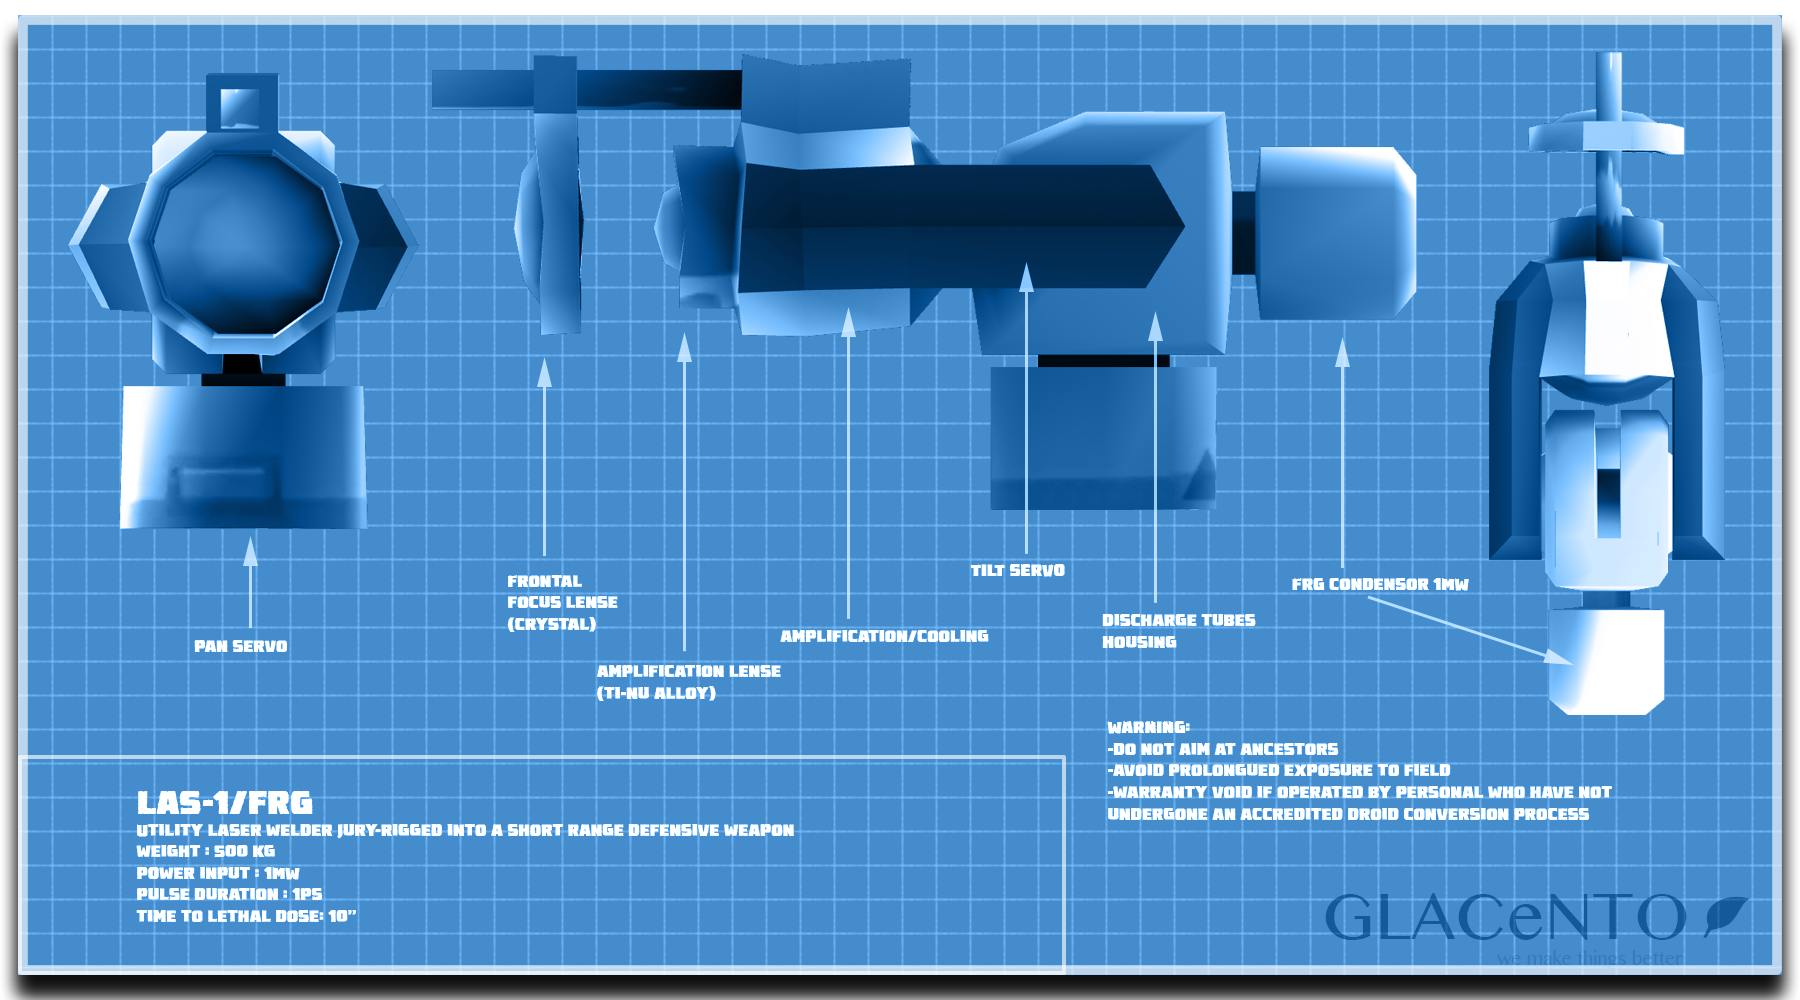 Blueprint for the field resonance generator image mcdroid indie db report rss blueprint for the field resonance generator view original malvernweather Choice Image